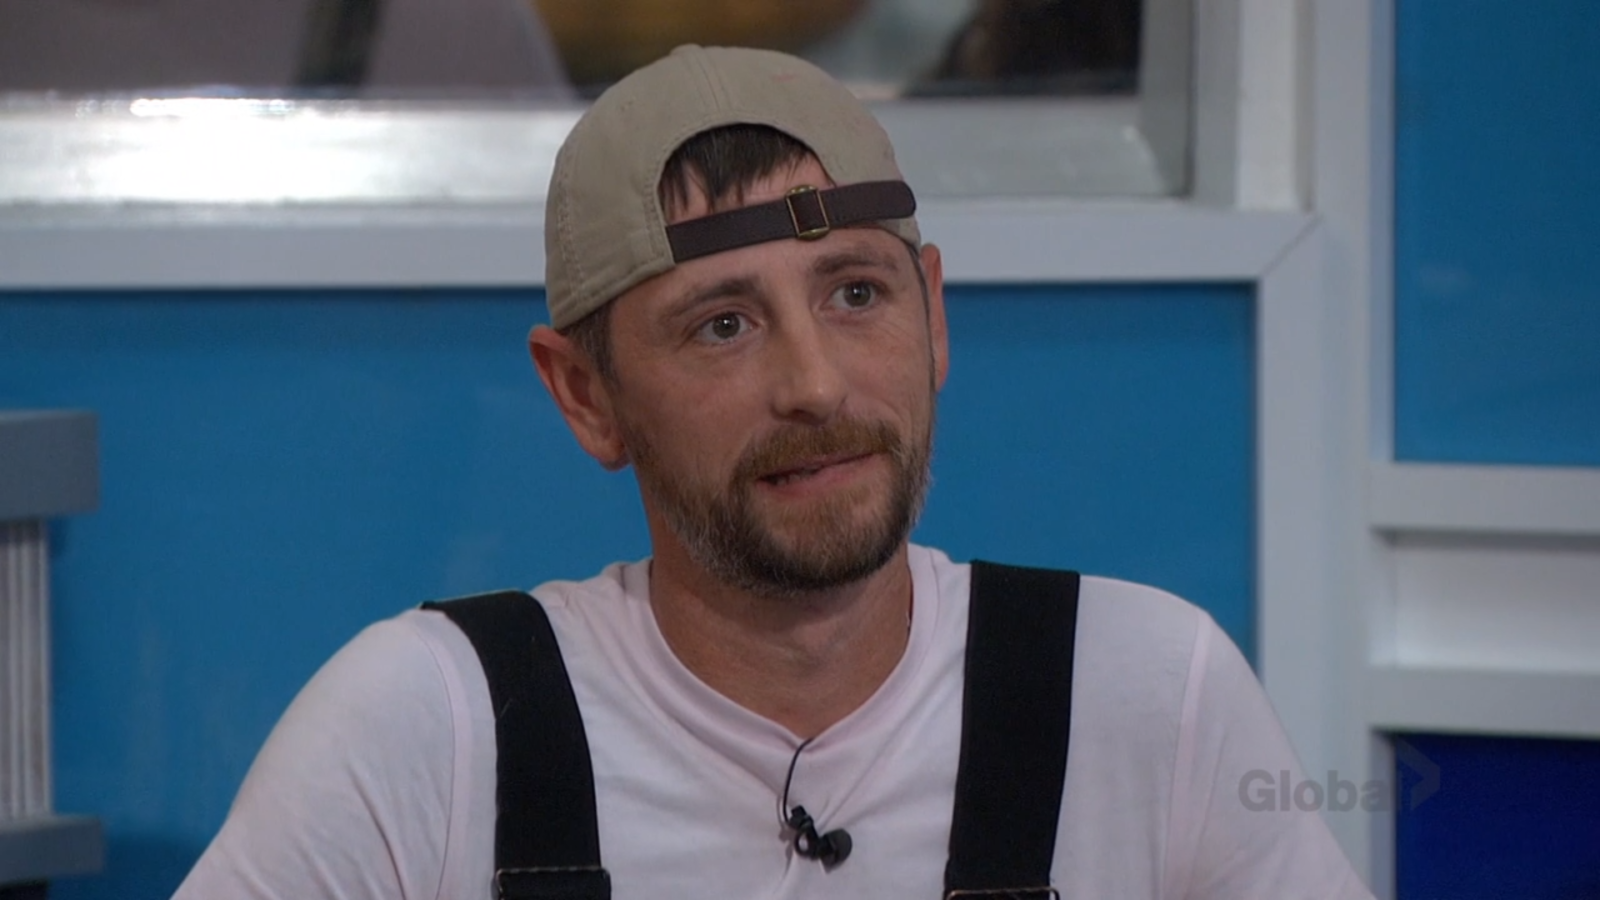 Frenchie eviction Big Brother 23